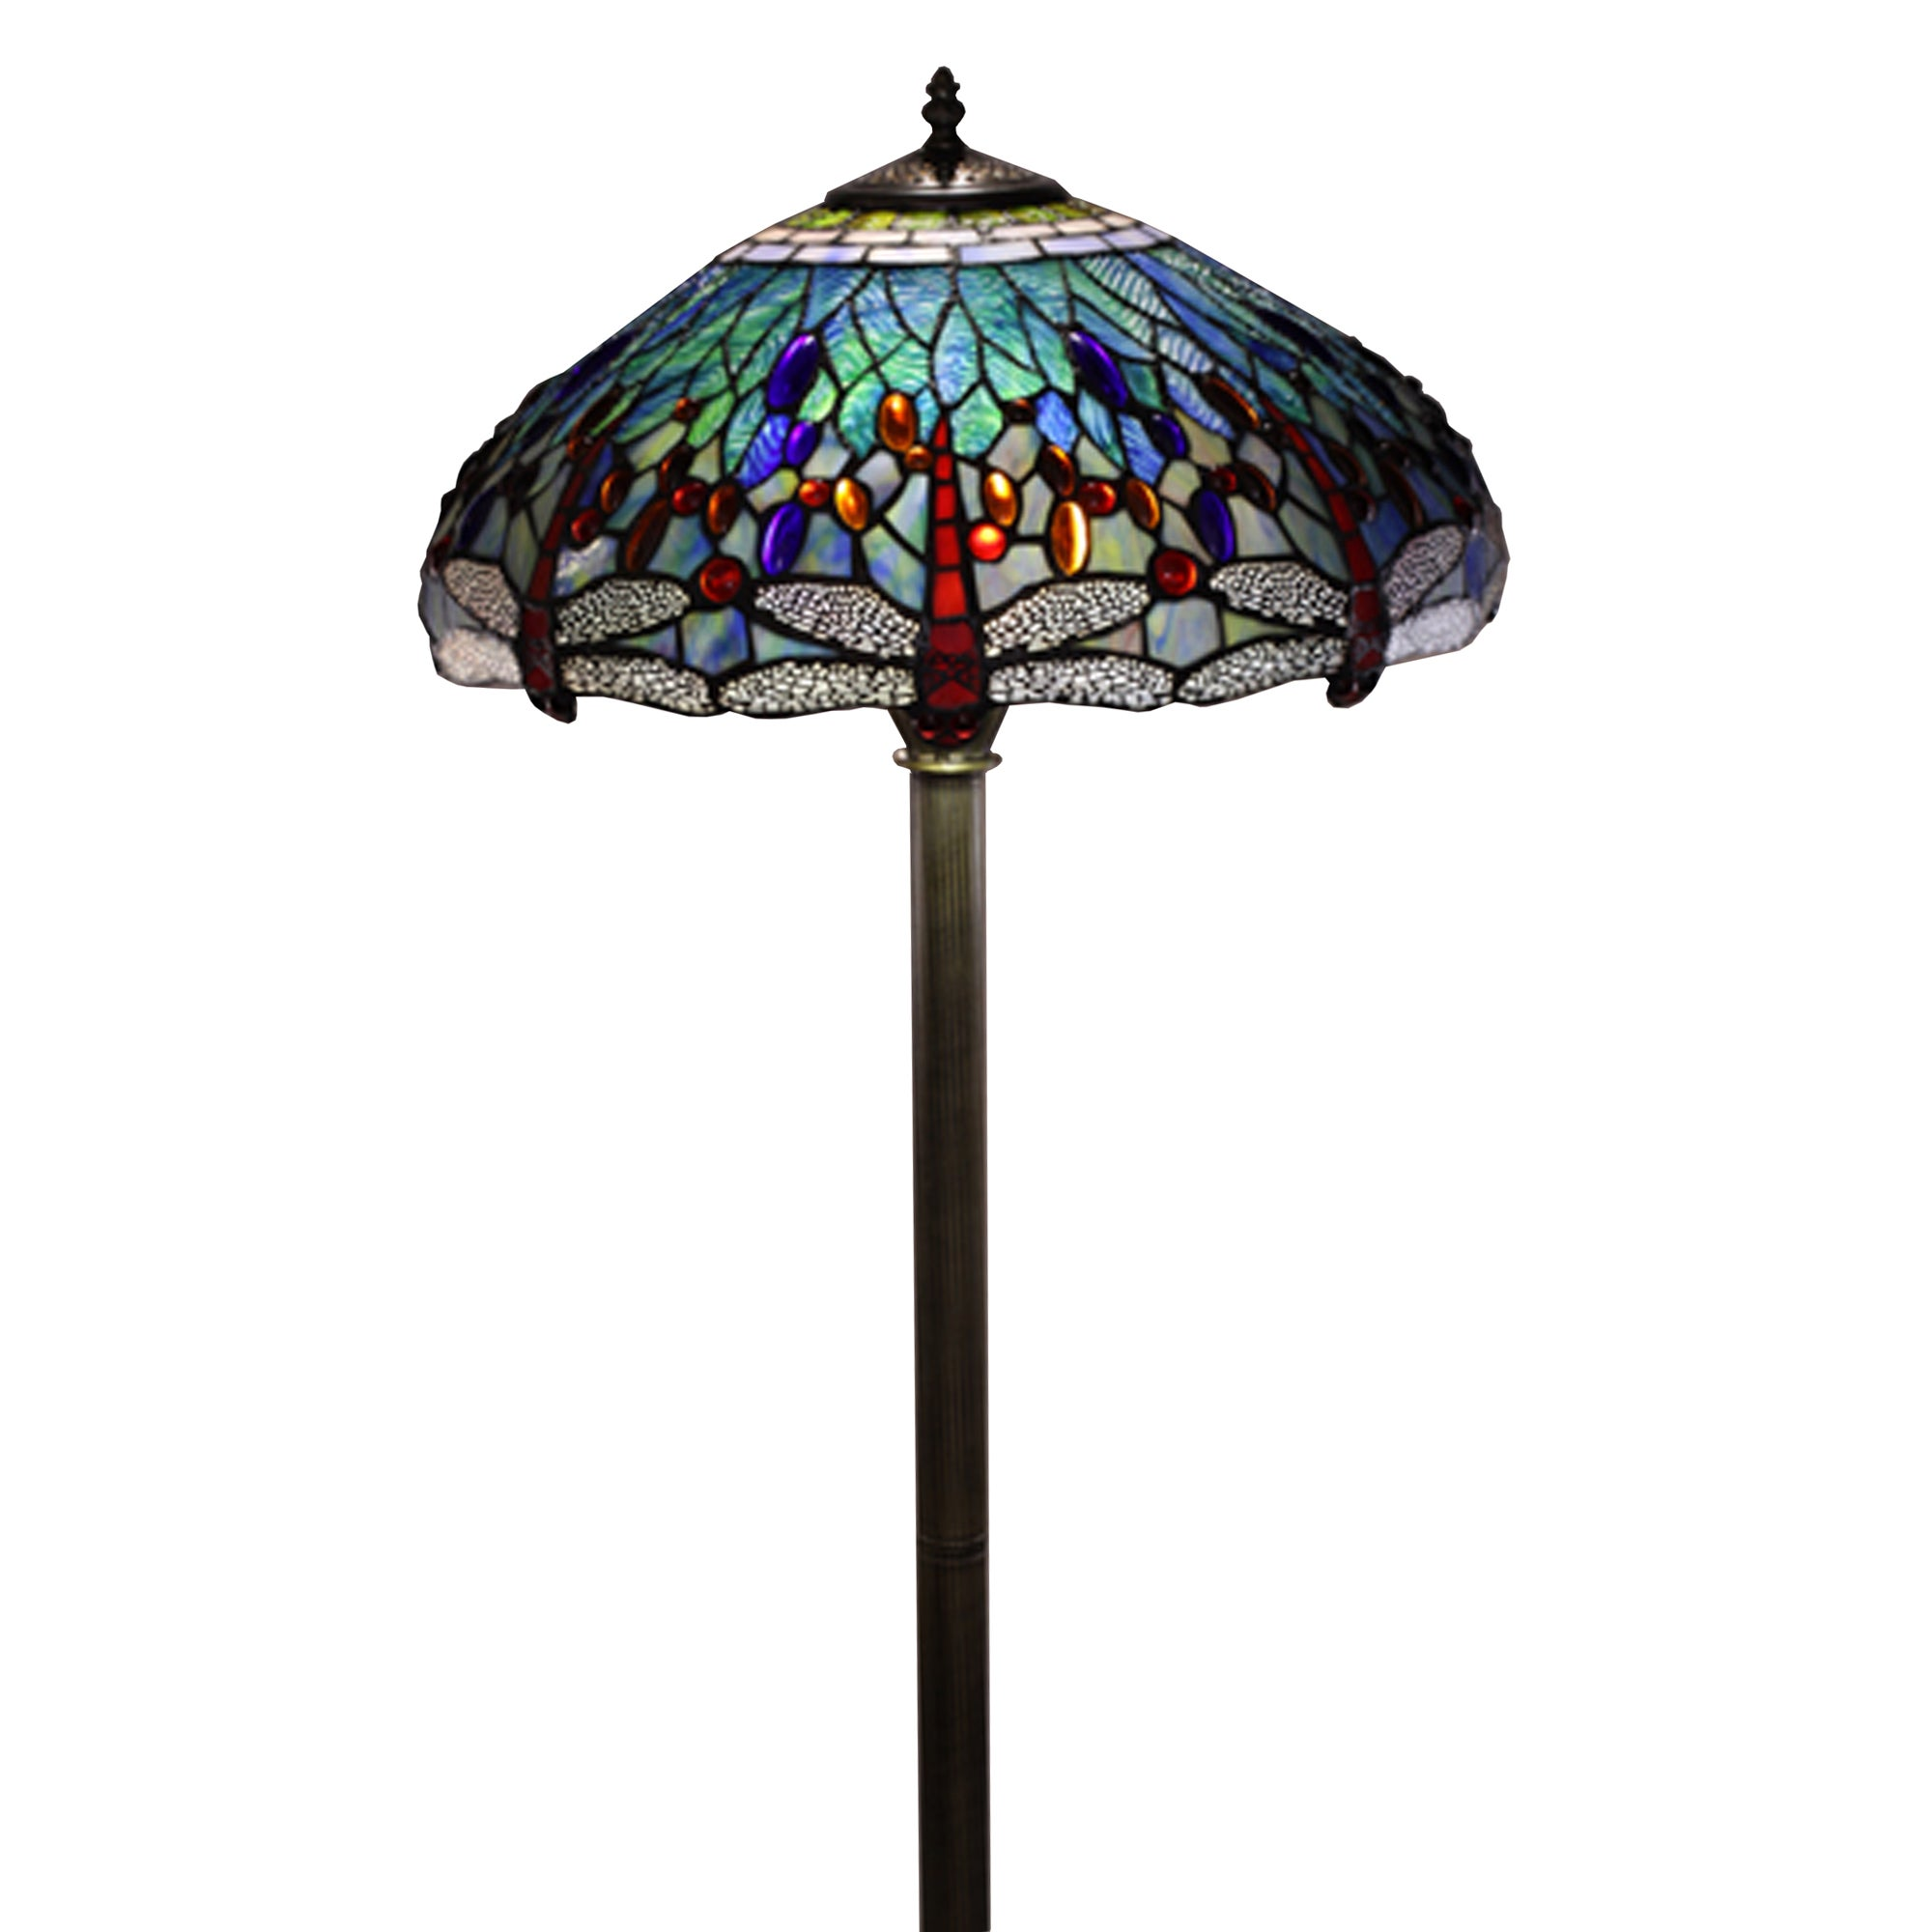 Charmant Shop Tiffany Style Dragonfly Floor Lamp   Free Shipping Today    Overstock.com   4047883